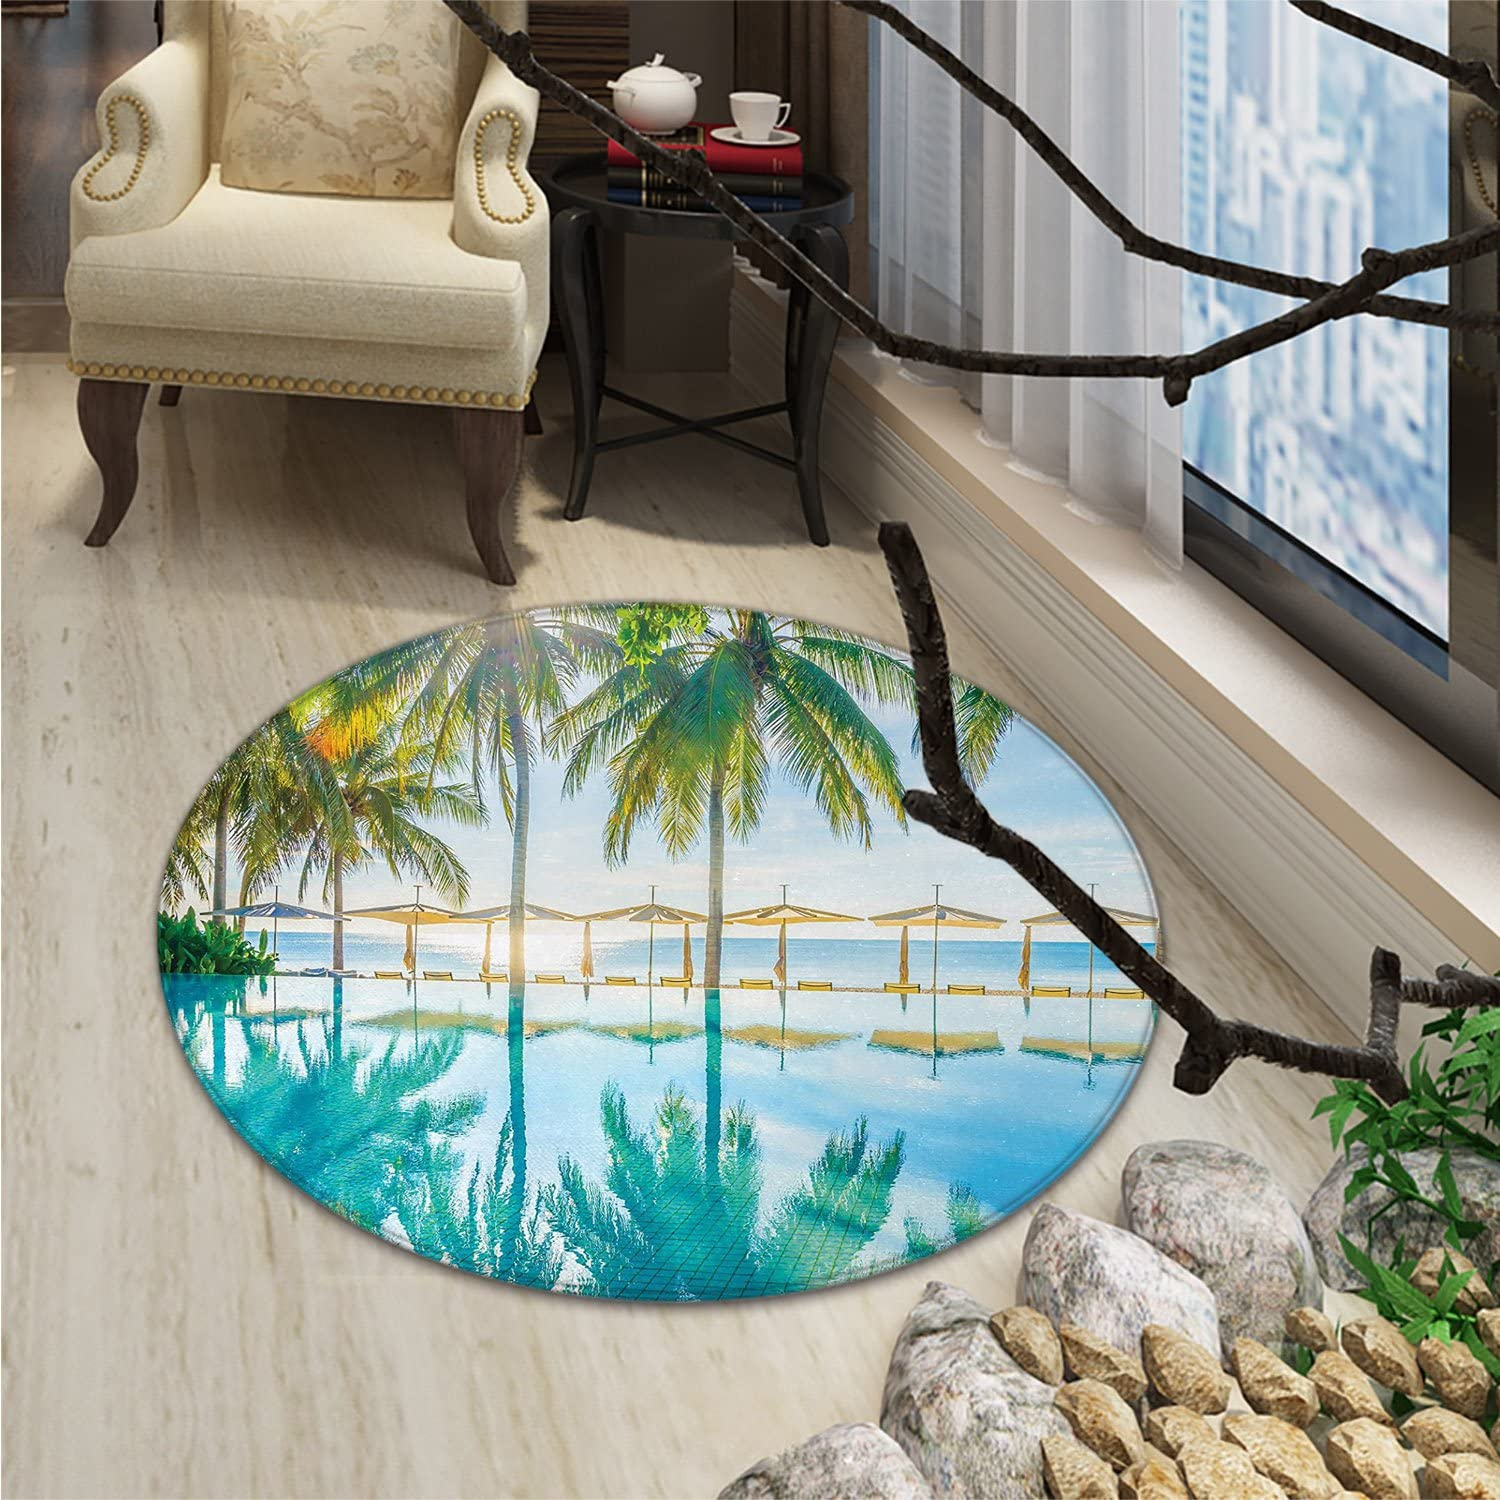 Landscape Round Rug Kid Carpet Pool by The Beach with Lights Seasonal Eden Hot Sunny Humid Coastal Bay PhotoOriental Floor and Carpets Green bluee